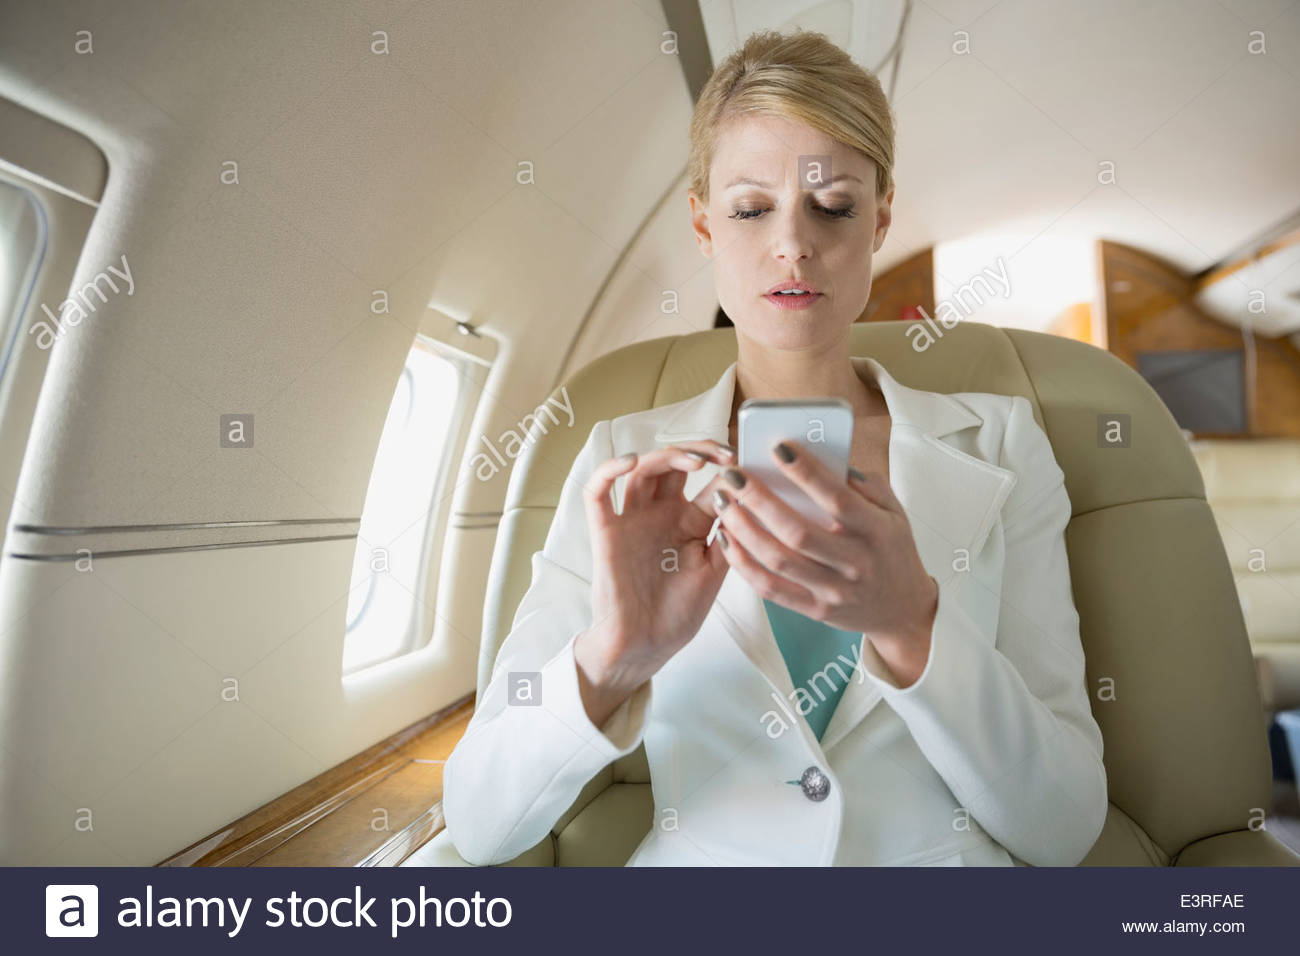 Businesswoman text messaging on corporate jet - Stock Image